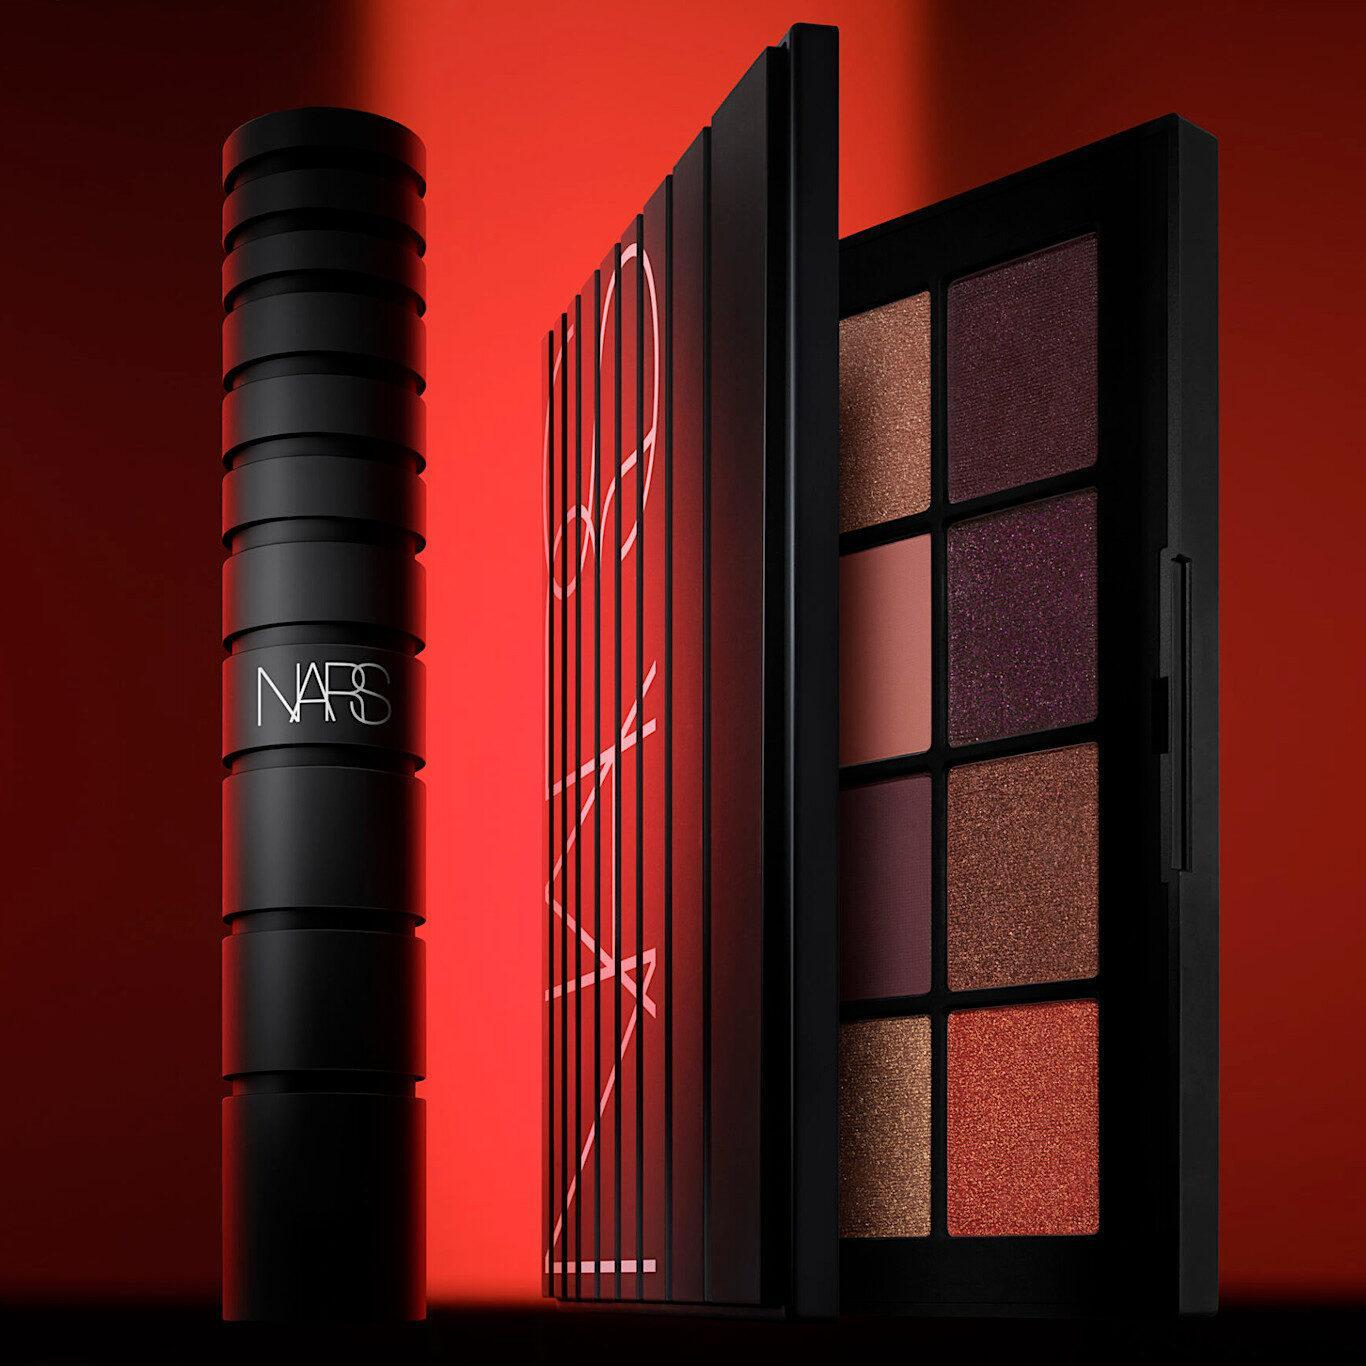 NARS Climax Extreme Eyeshadow Palette & Mascara Post Cover